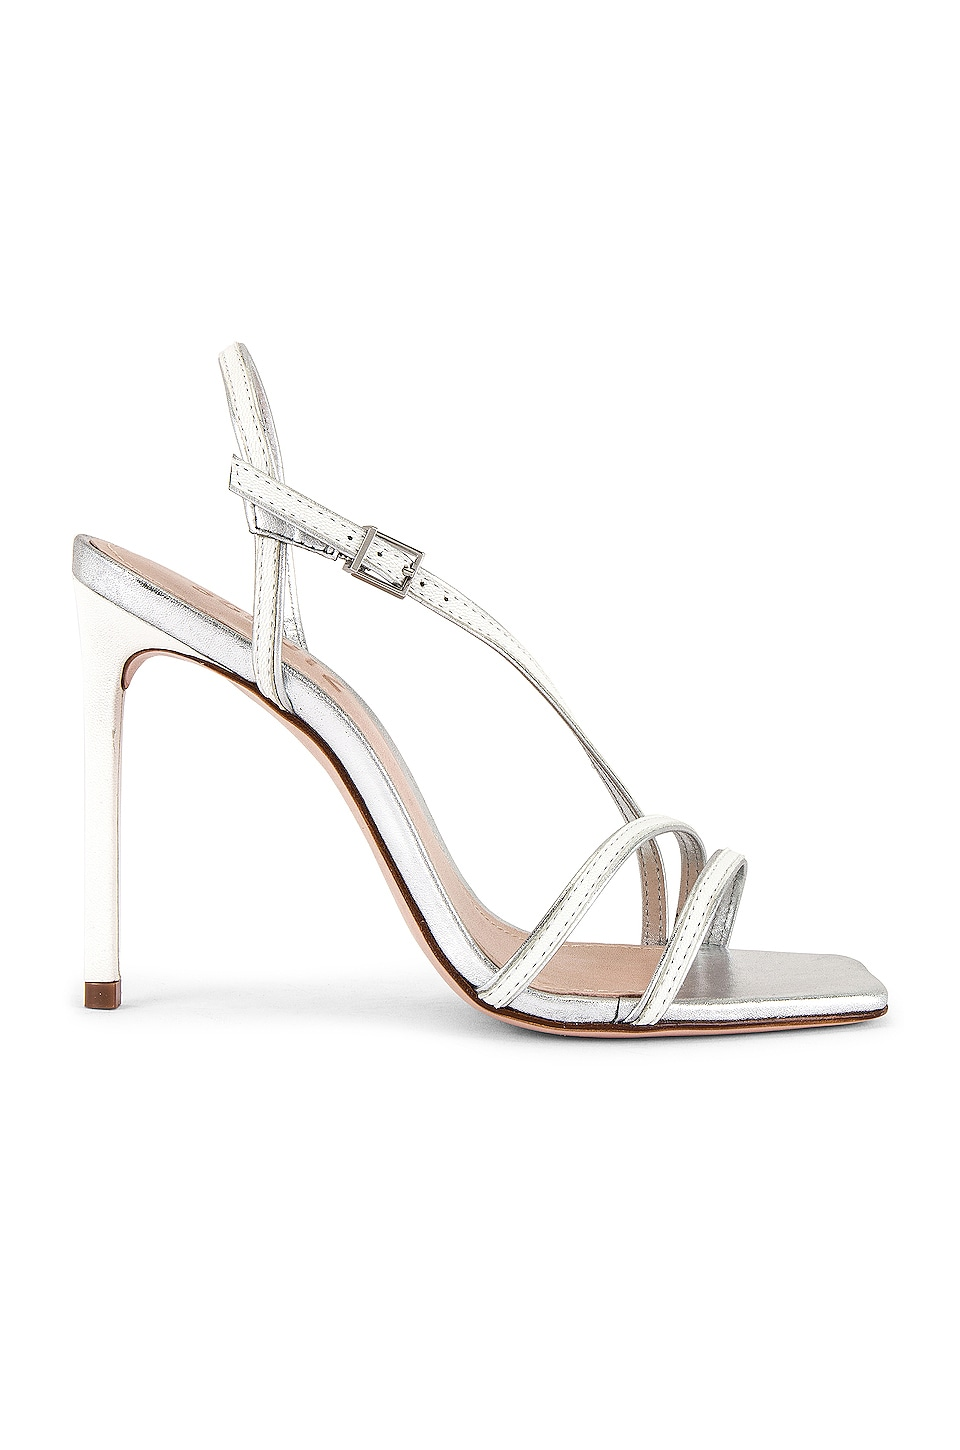 Schutz Luna Stiletto in White & Silver